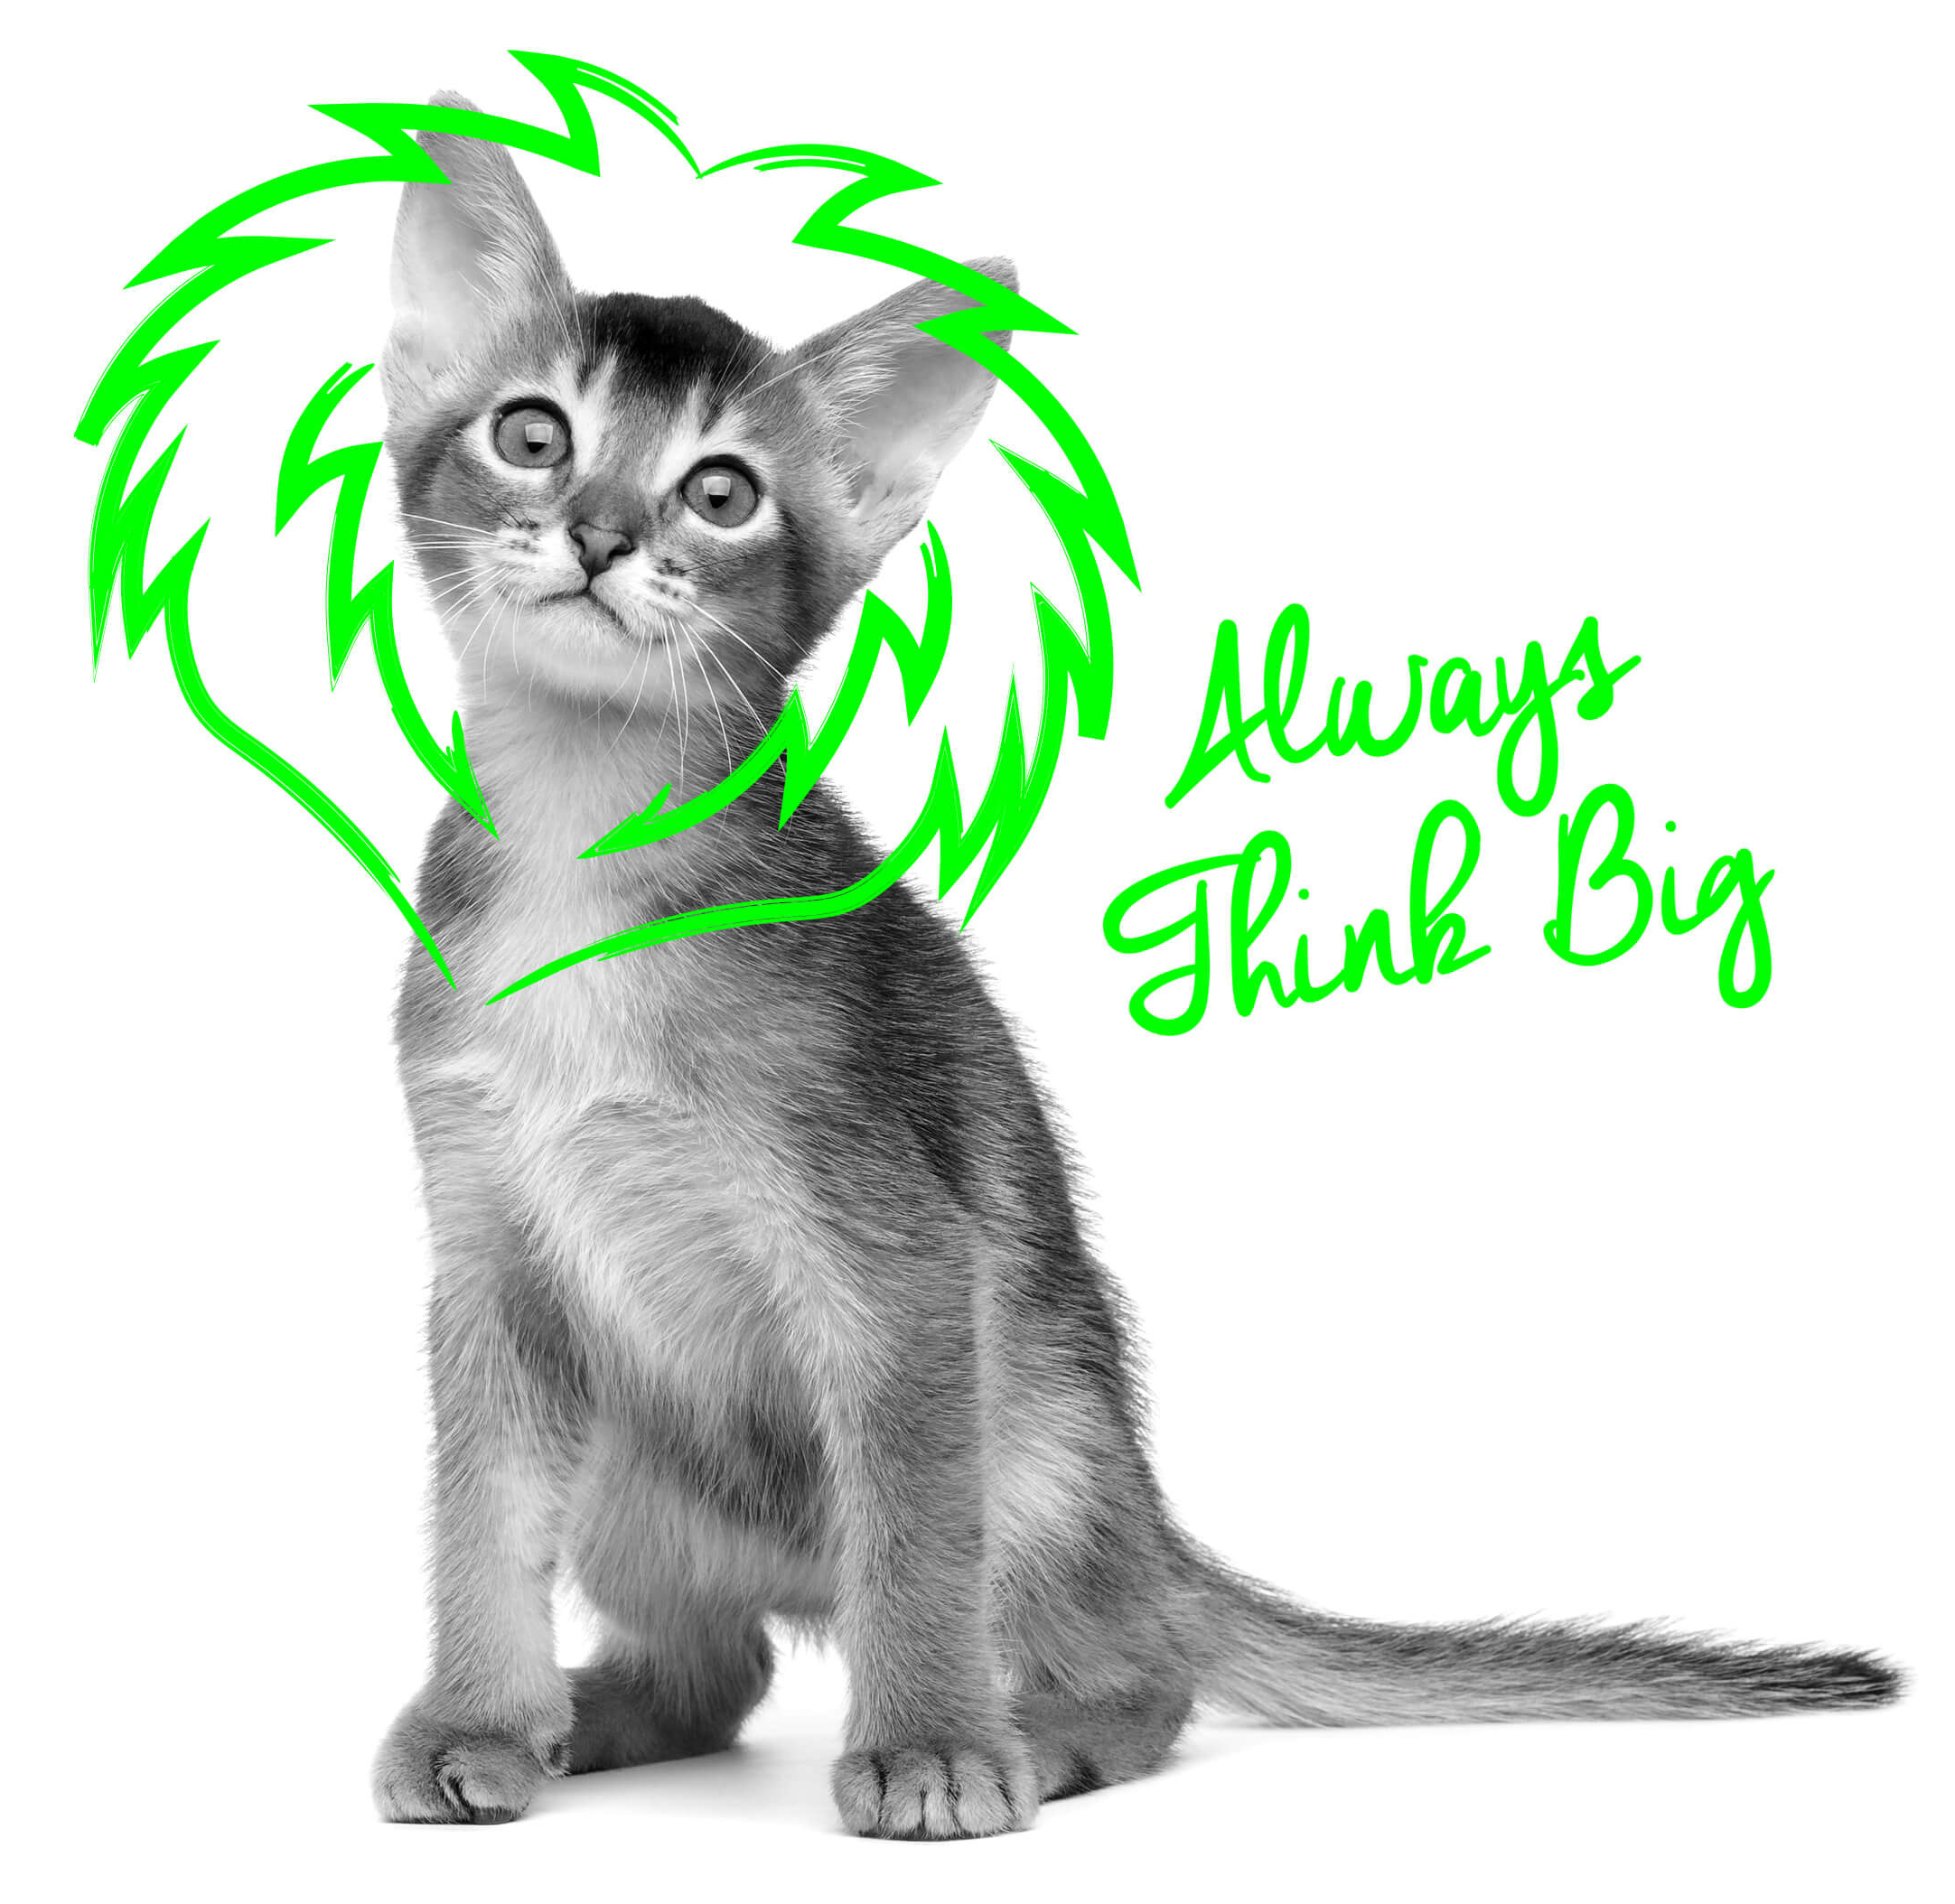 ThinkBig_Cat_aw copy.jpg